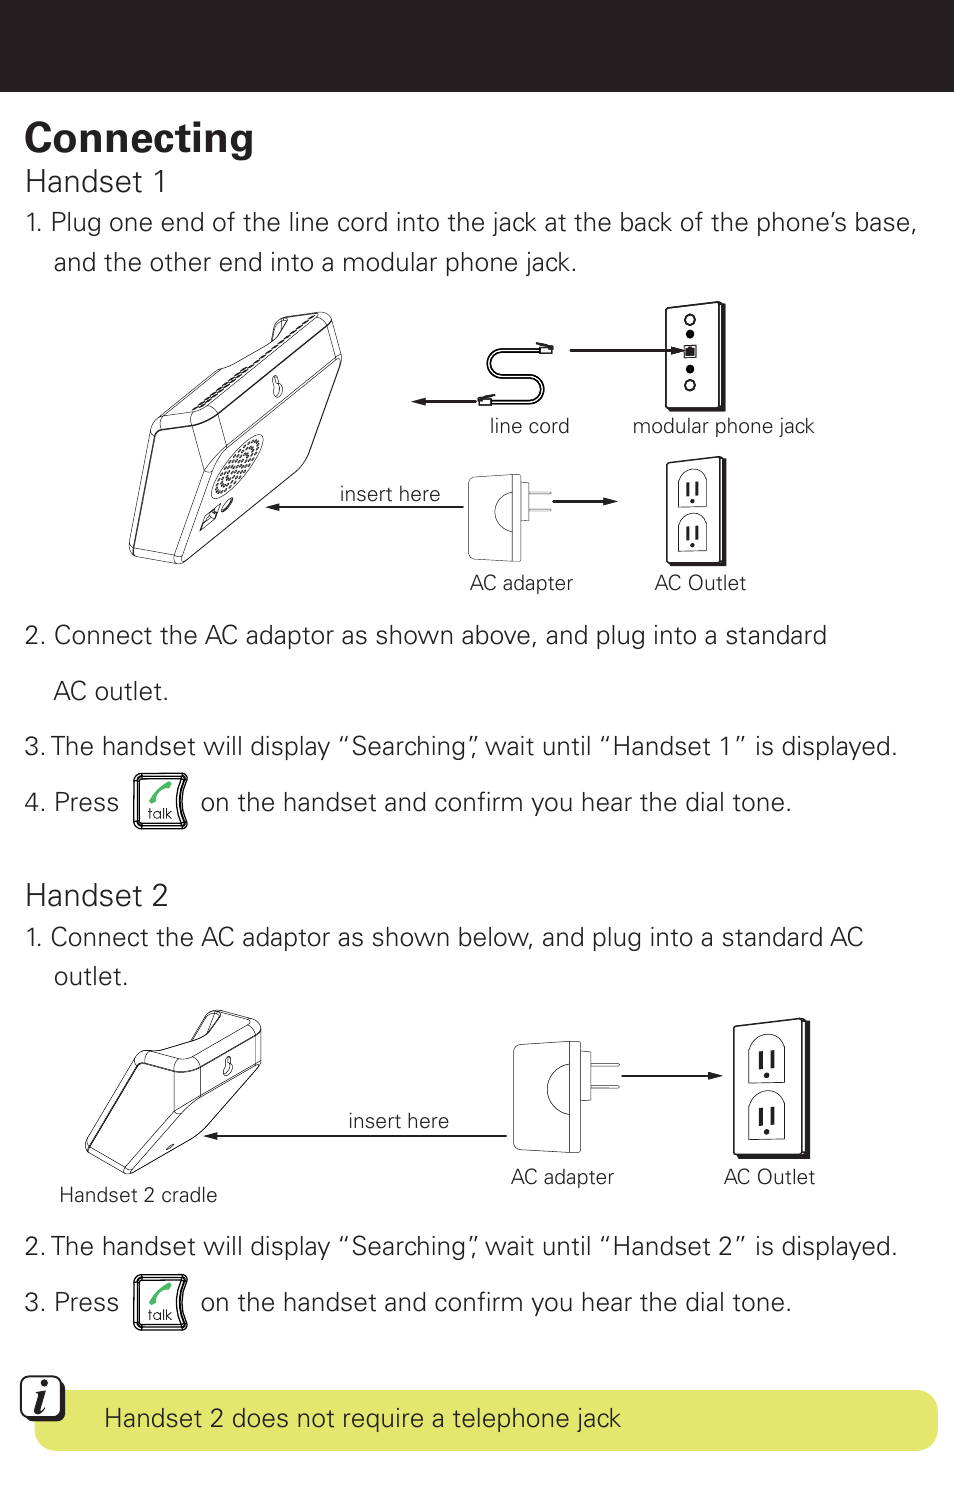 Connecting Rechargeable Battery Warning Handset 1 Emerson Em6120 Modular Phone Jack Wiring Diagram 2 User Manual Page 5 28